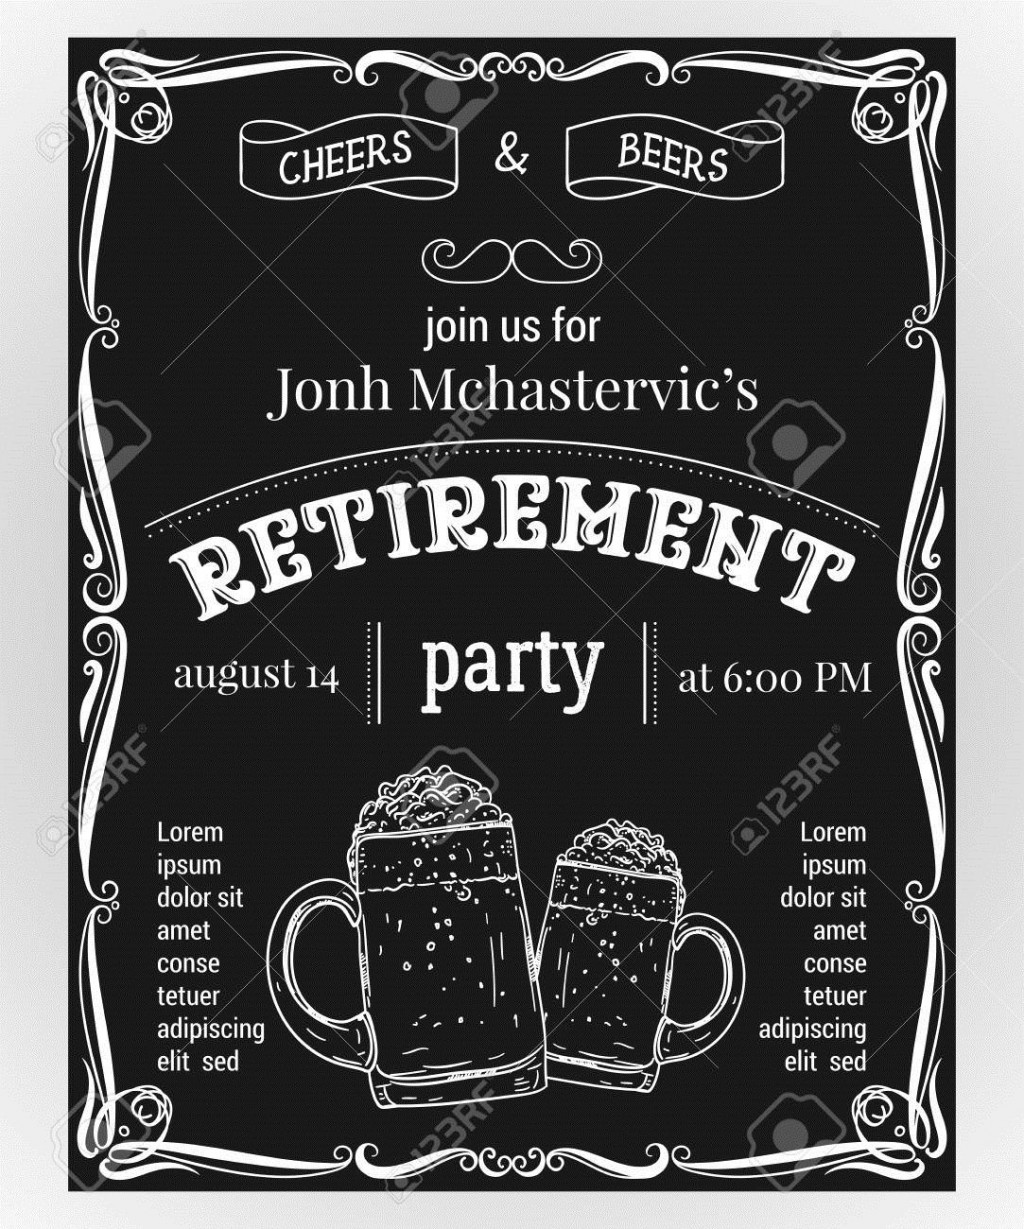 004 Wondrou Retirement Party Invitation Template Free Word High Definition  MLarge